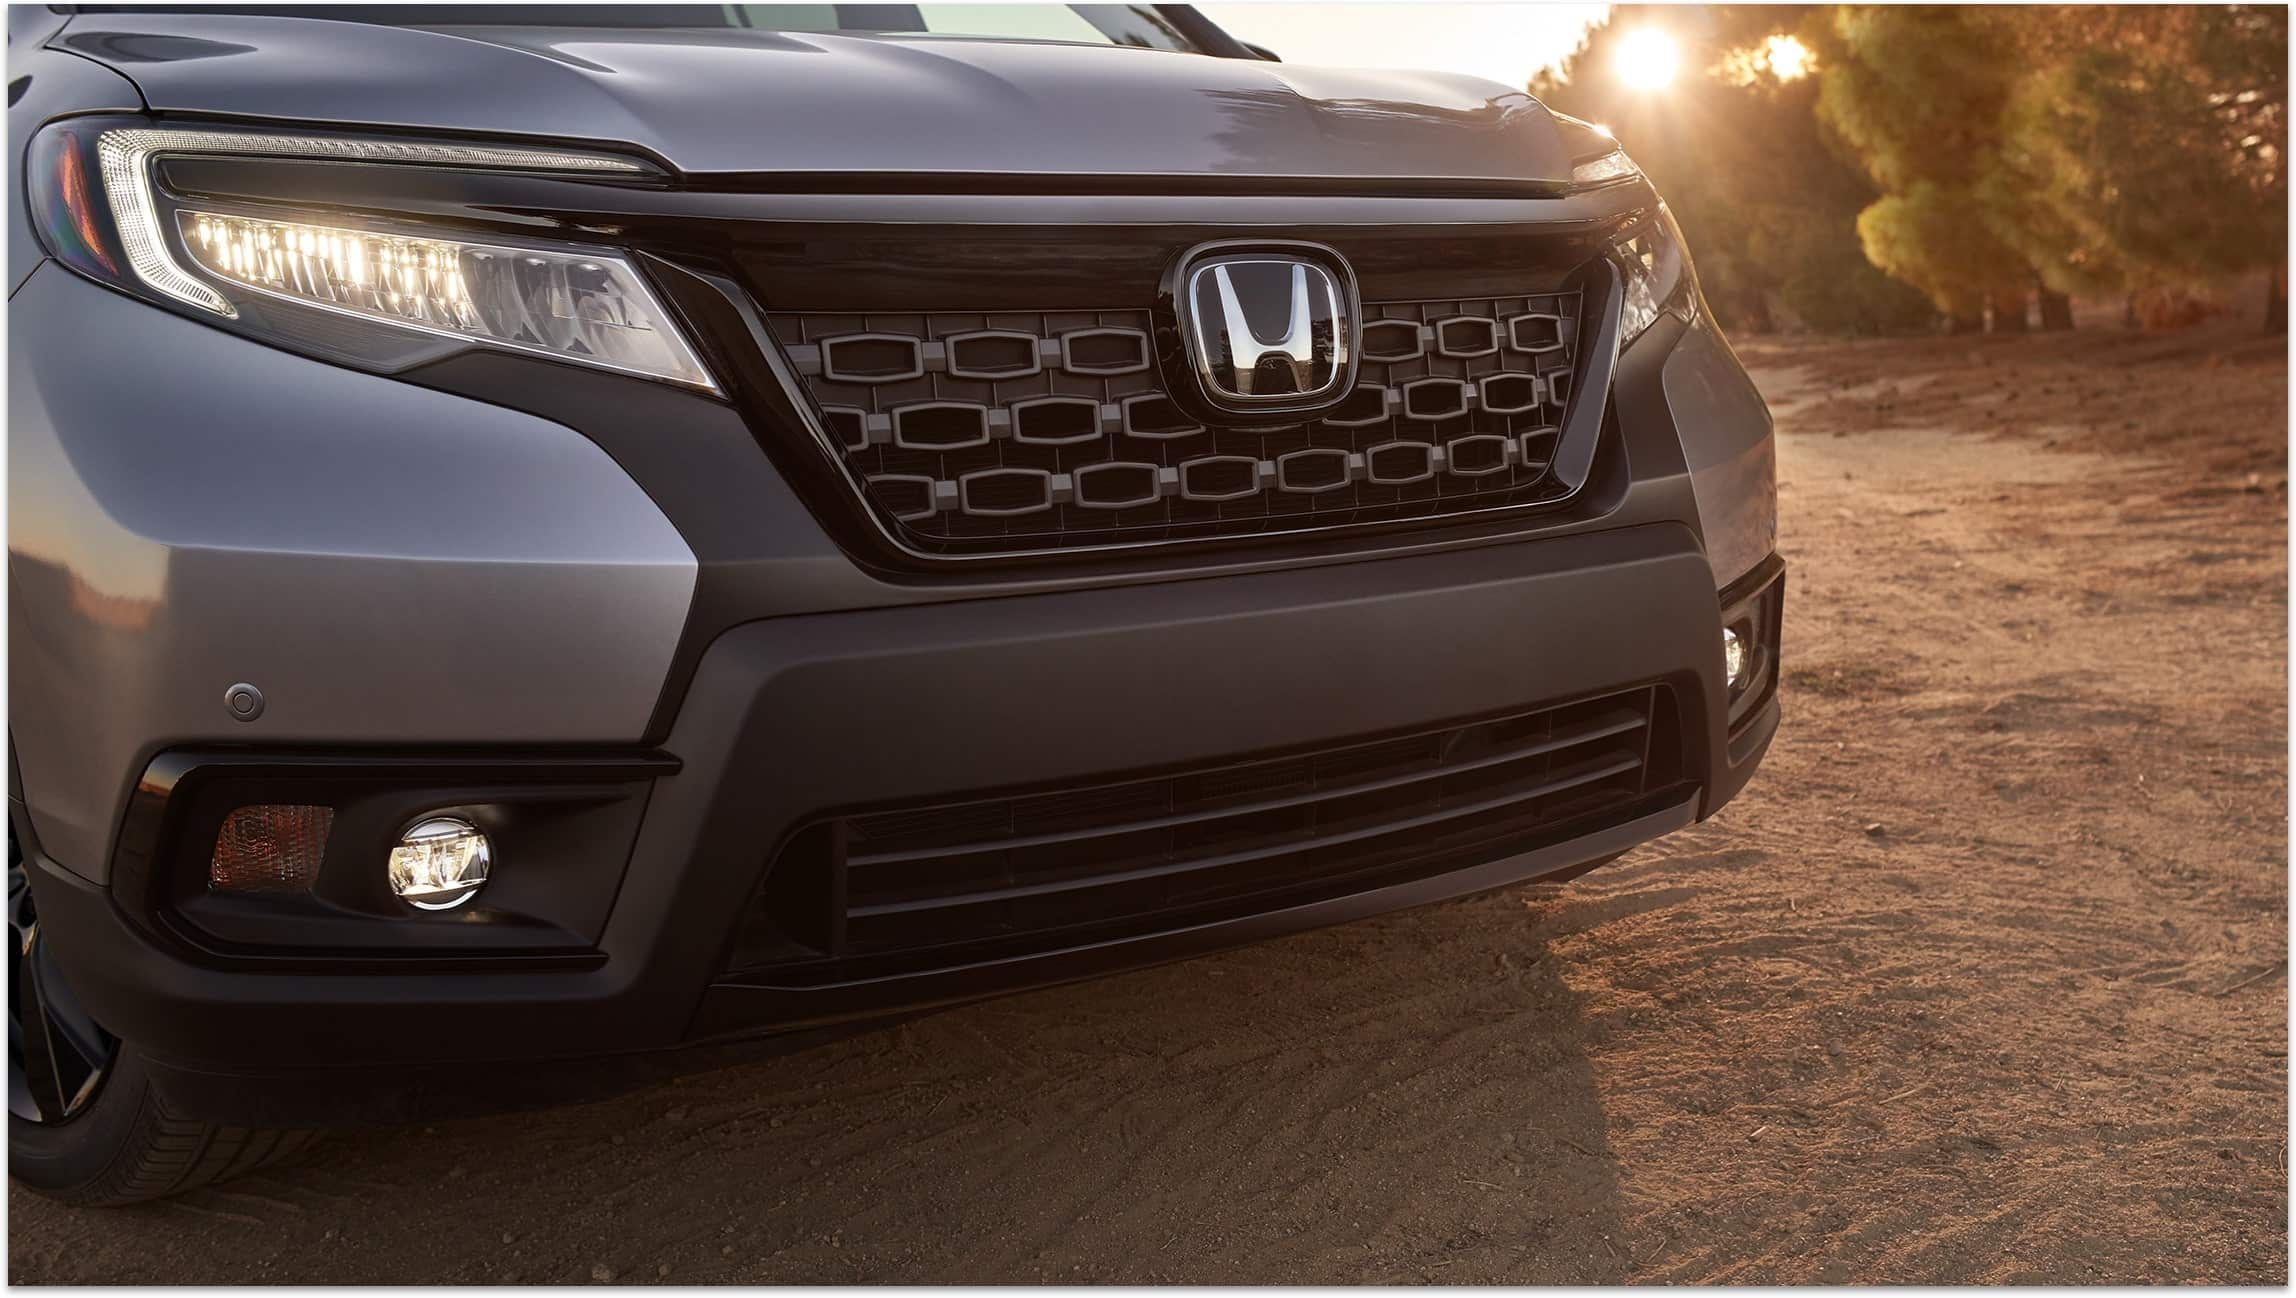 Grille detail on the 2019 Honda Passport Elite in Lunar Silver Metallic.